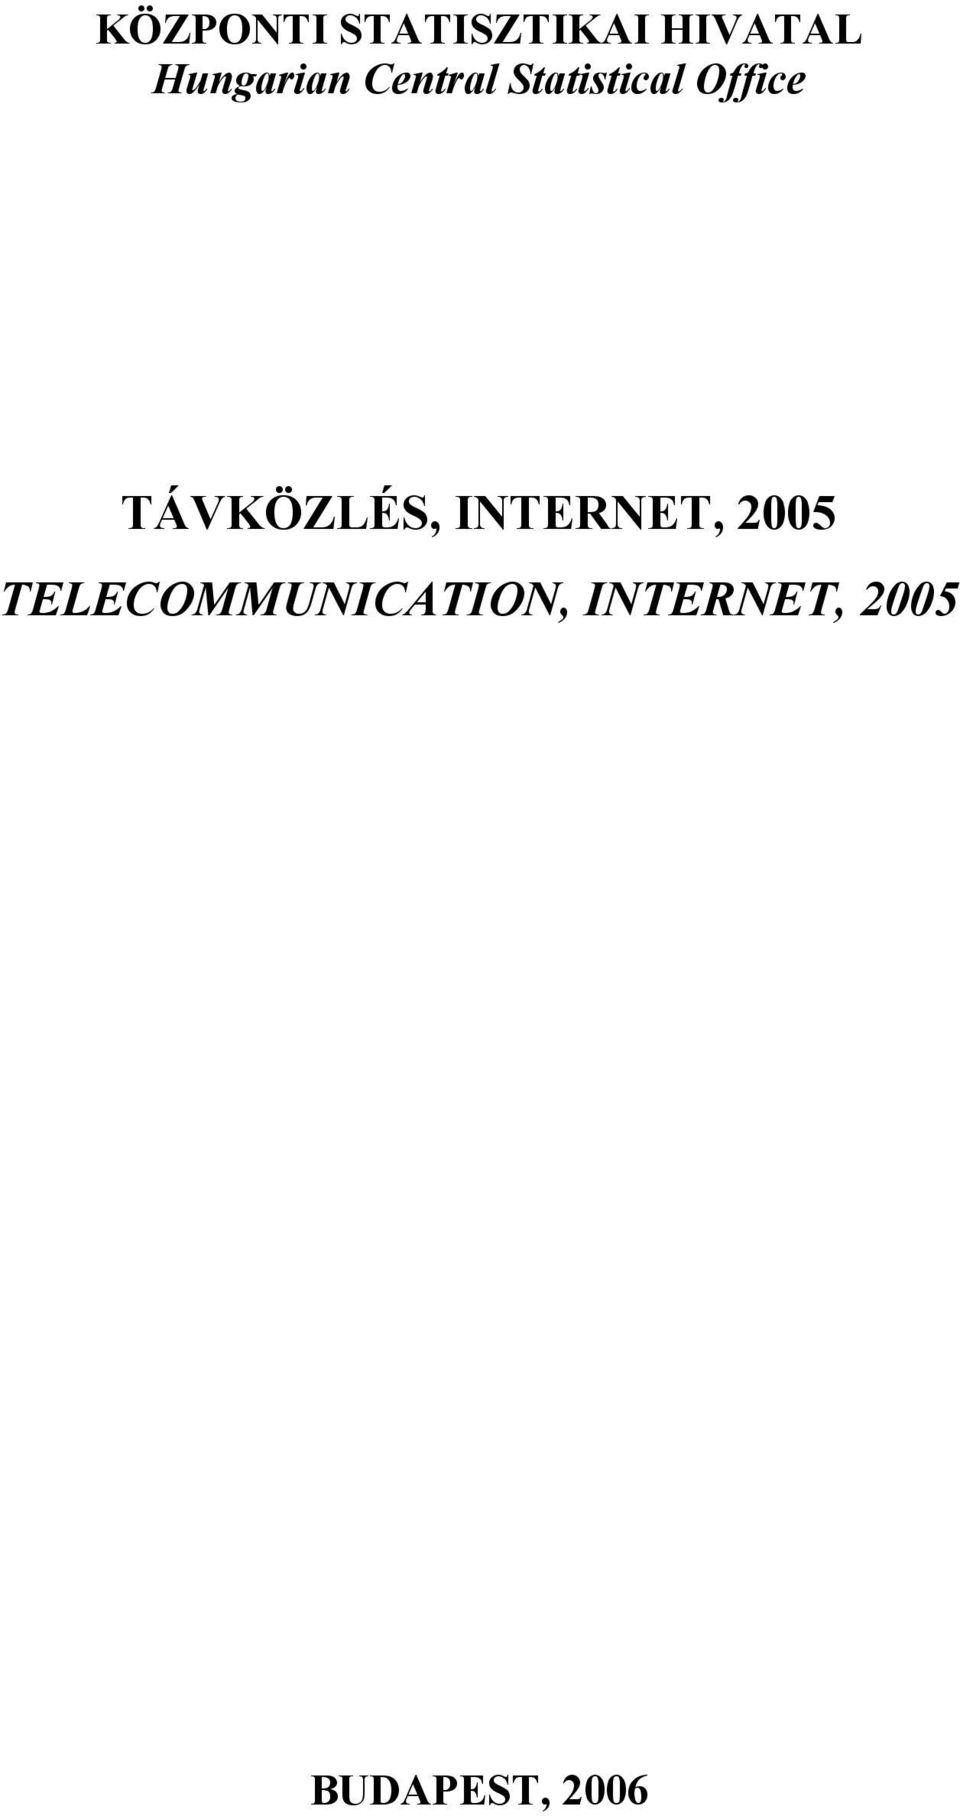 Office TÁVKÖZLÉS, INTERNET, 2005